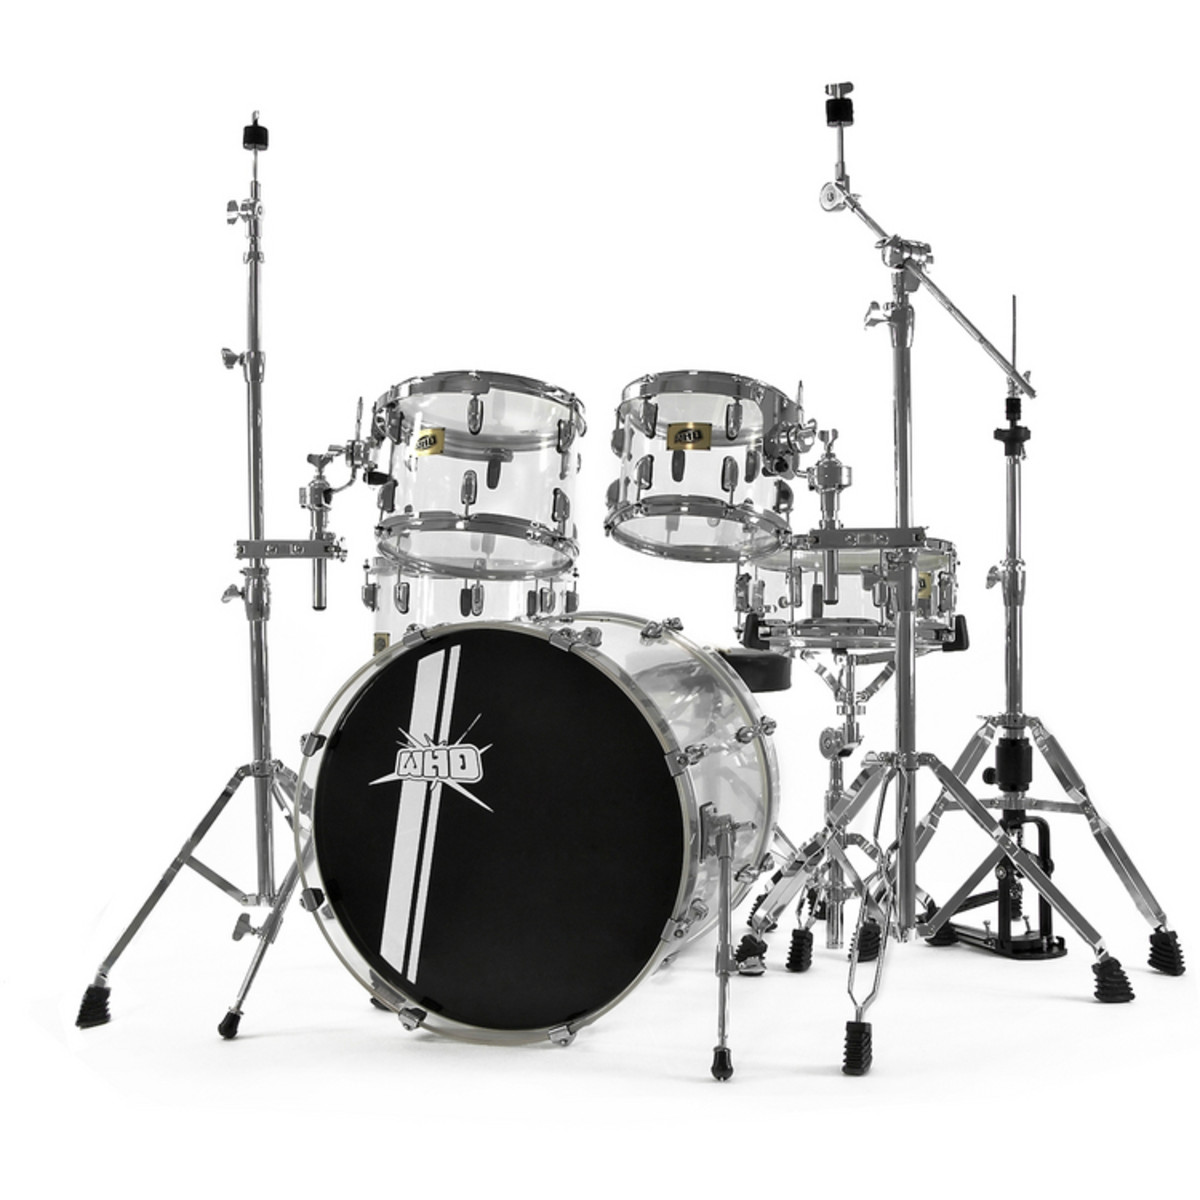 DISC WHD Acrylic Drum Kit, Crystal-Clear at Gear4music.com